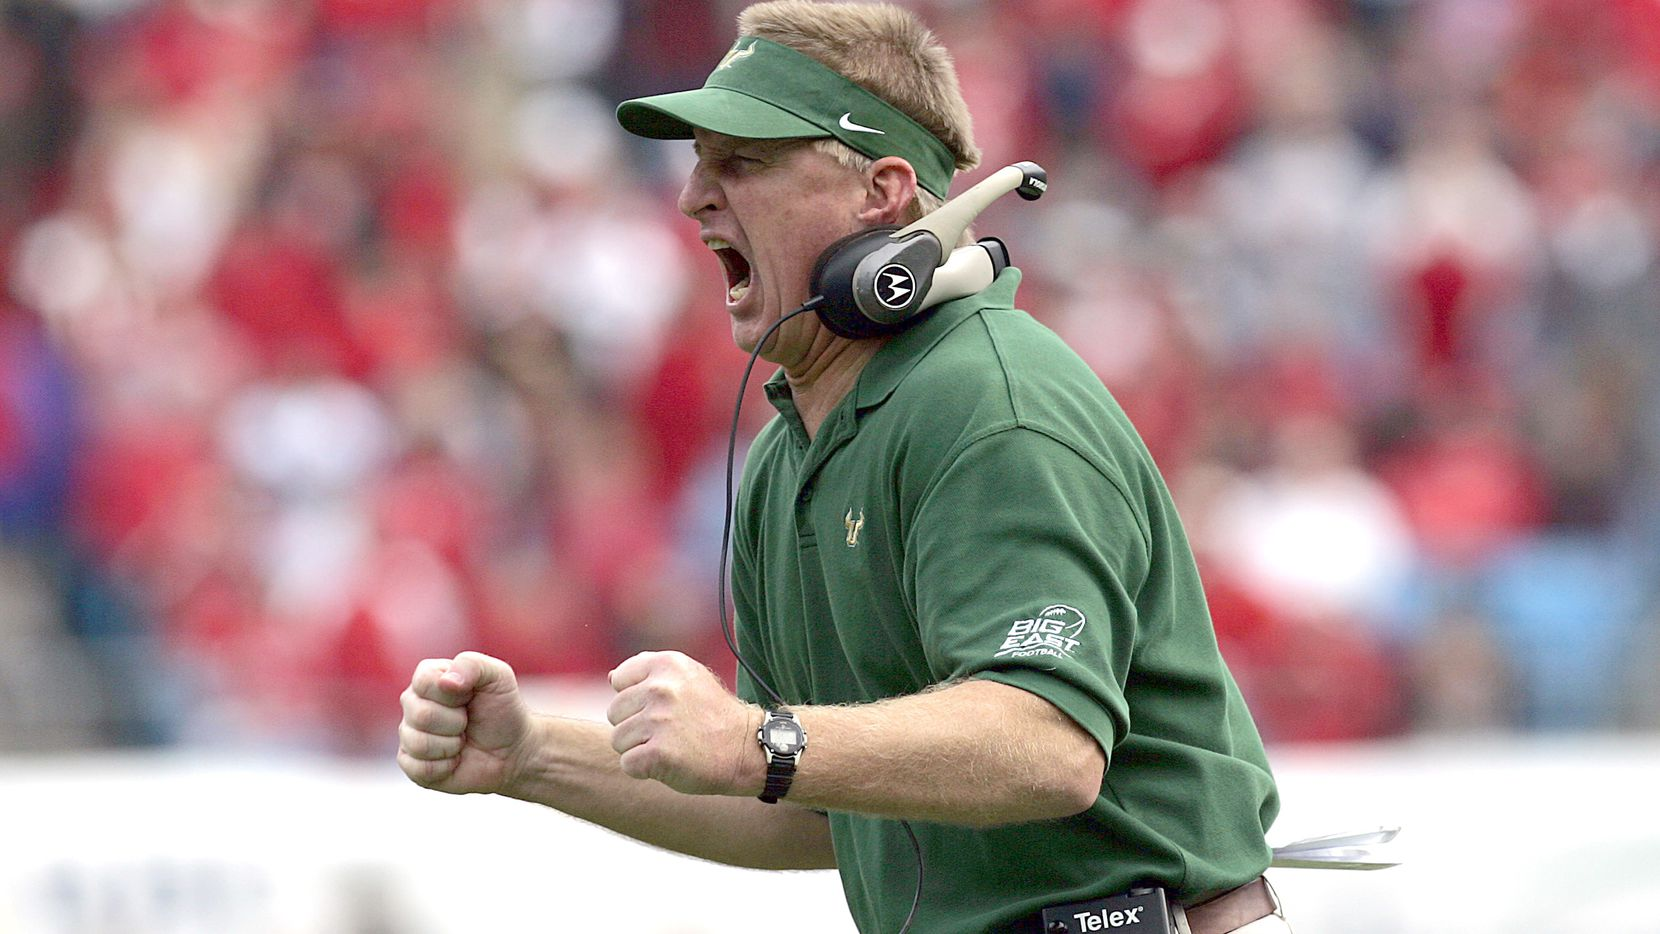 South Florida head coach Jim Leavitt yells to his team during the Bulls 14-0 loss to NC State in the 2005 Meineke Car Care Bowl Saturday, December 31st, 2005, at Bank of America Stadium in Charlotte, N.C. (Photo by Kevin C.  Cox/WireImage)